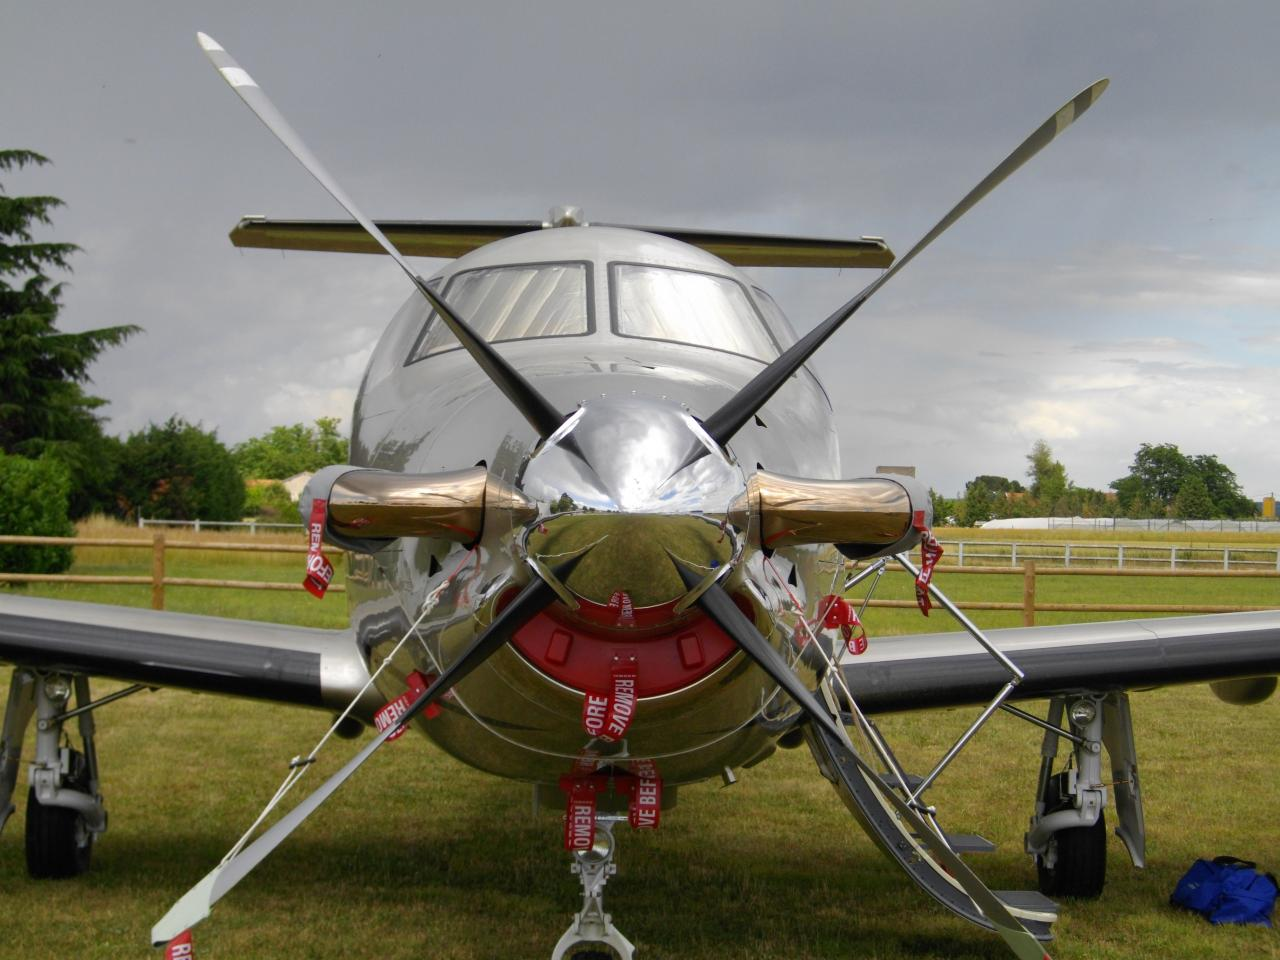 10 Pilatus PC-12 de 9 places, avion d'affaires